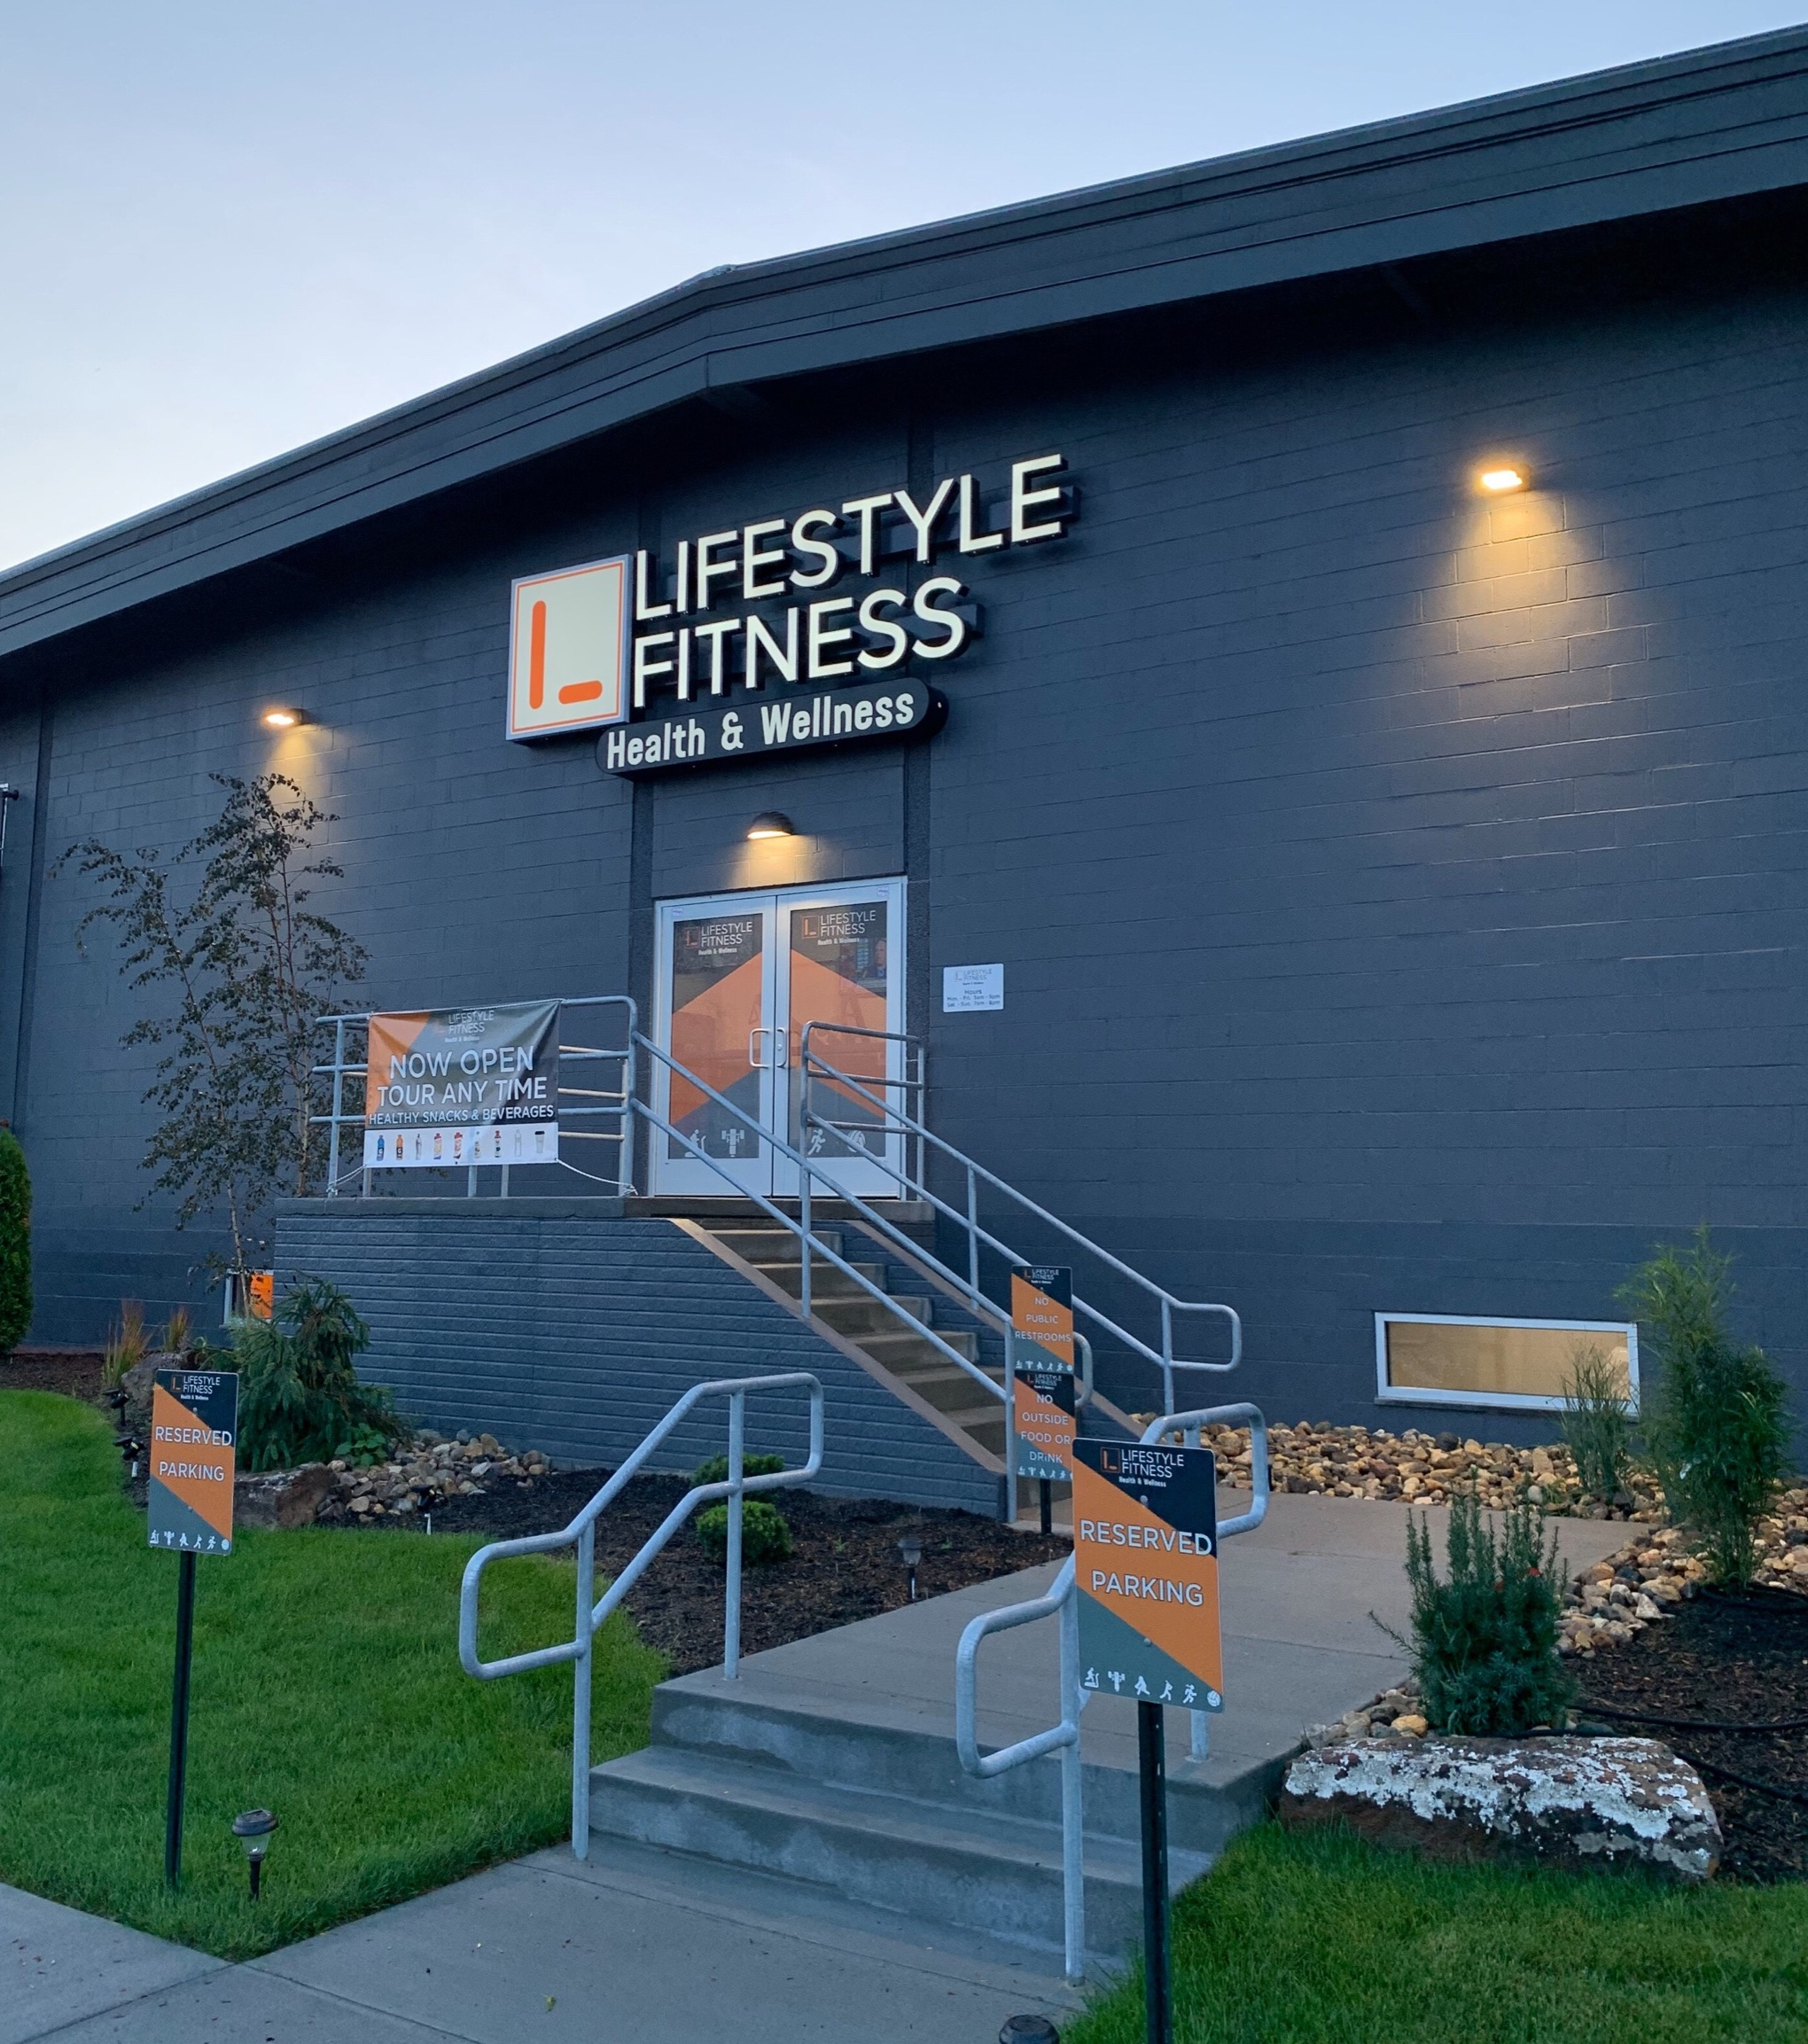 Who We Are - Lifestyle Fitness offers an upscale experience in a clean, classy environment.Our modern, technology incorporated facility, is complemented with state of the art equipment. Lifestyle embraces overall family health and wellness.Learn More About Our Team ➝ Contact us!➝